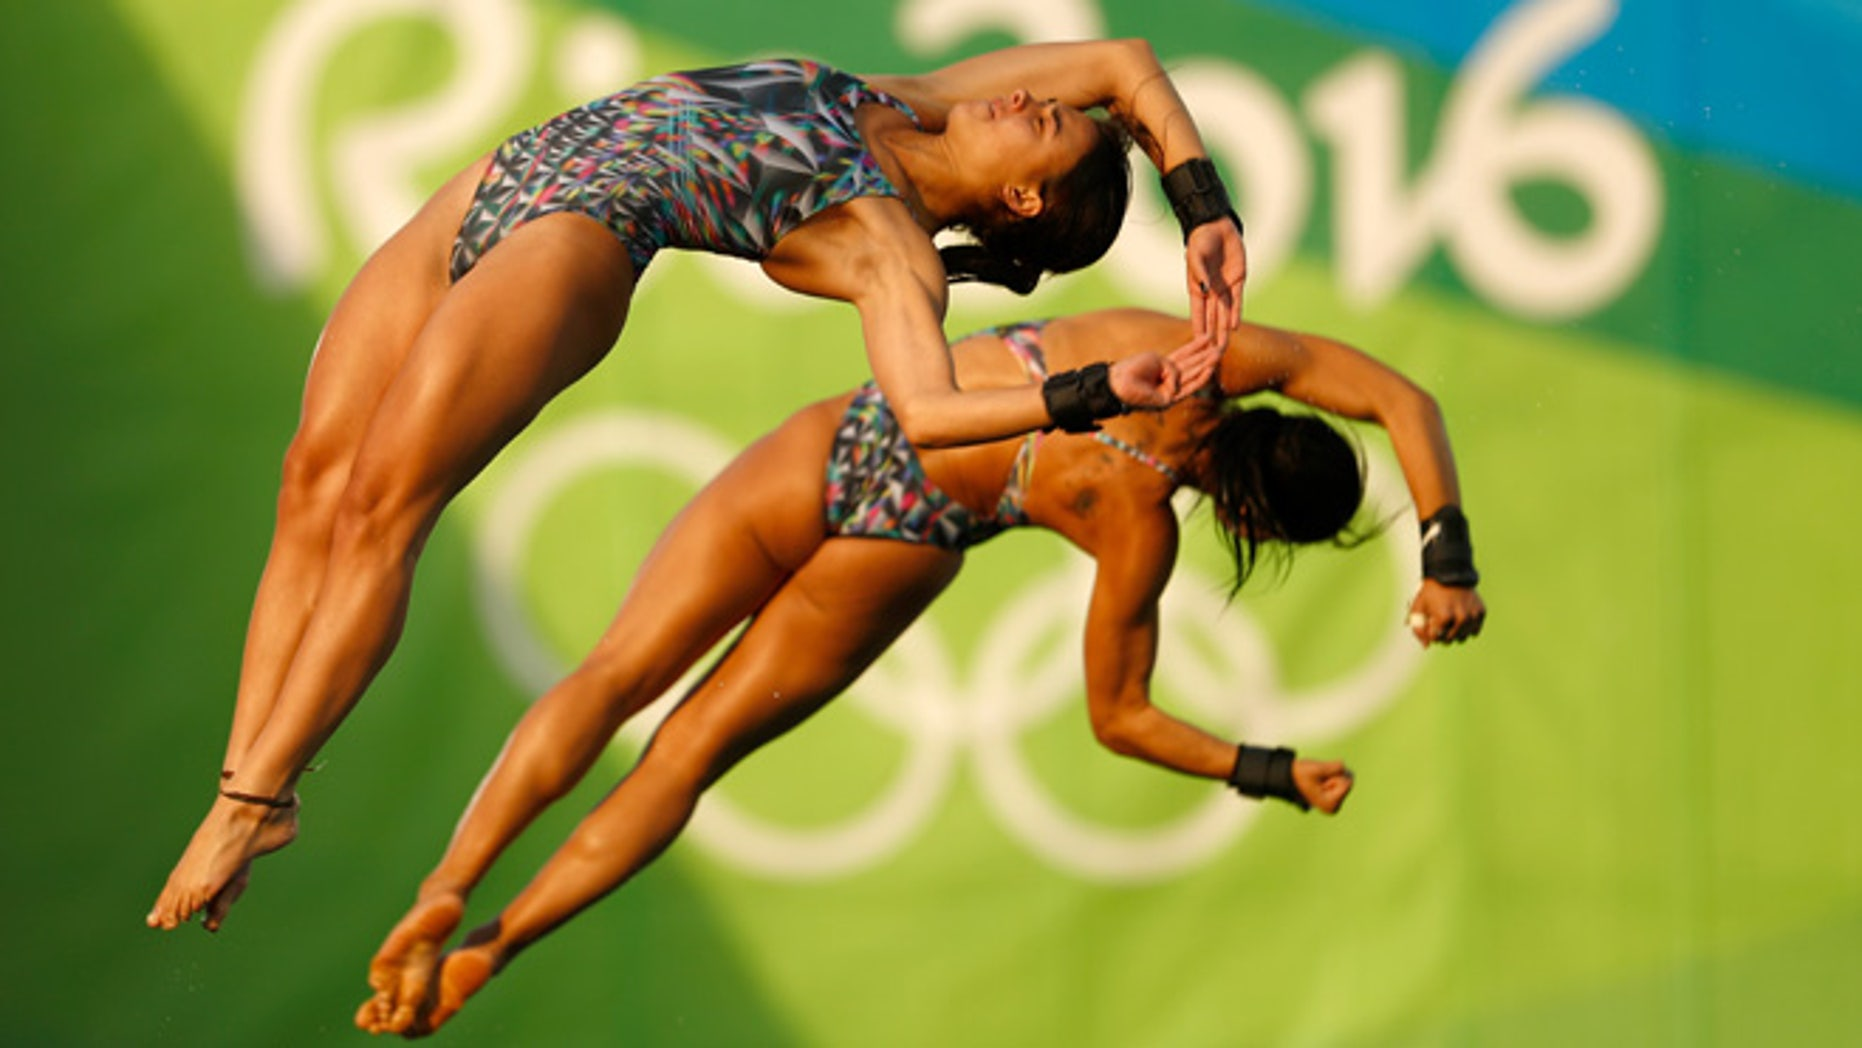 RIO DE JANEIRO, BRAZIL - AUGUST 09:  Ingrid Oliveira and Giovanna Pedroso of Brazil compete in the Women's Diving Synchronised 10m Platform Final on Day 4 of the Rio 2016 Olympic Games at Maria Lenk Aquatics Centre on August 9, 2016 in Rio de Janeiro, Brazil.  (Photo by Clive Rose/Getty Images)